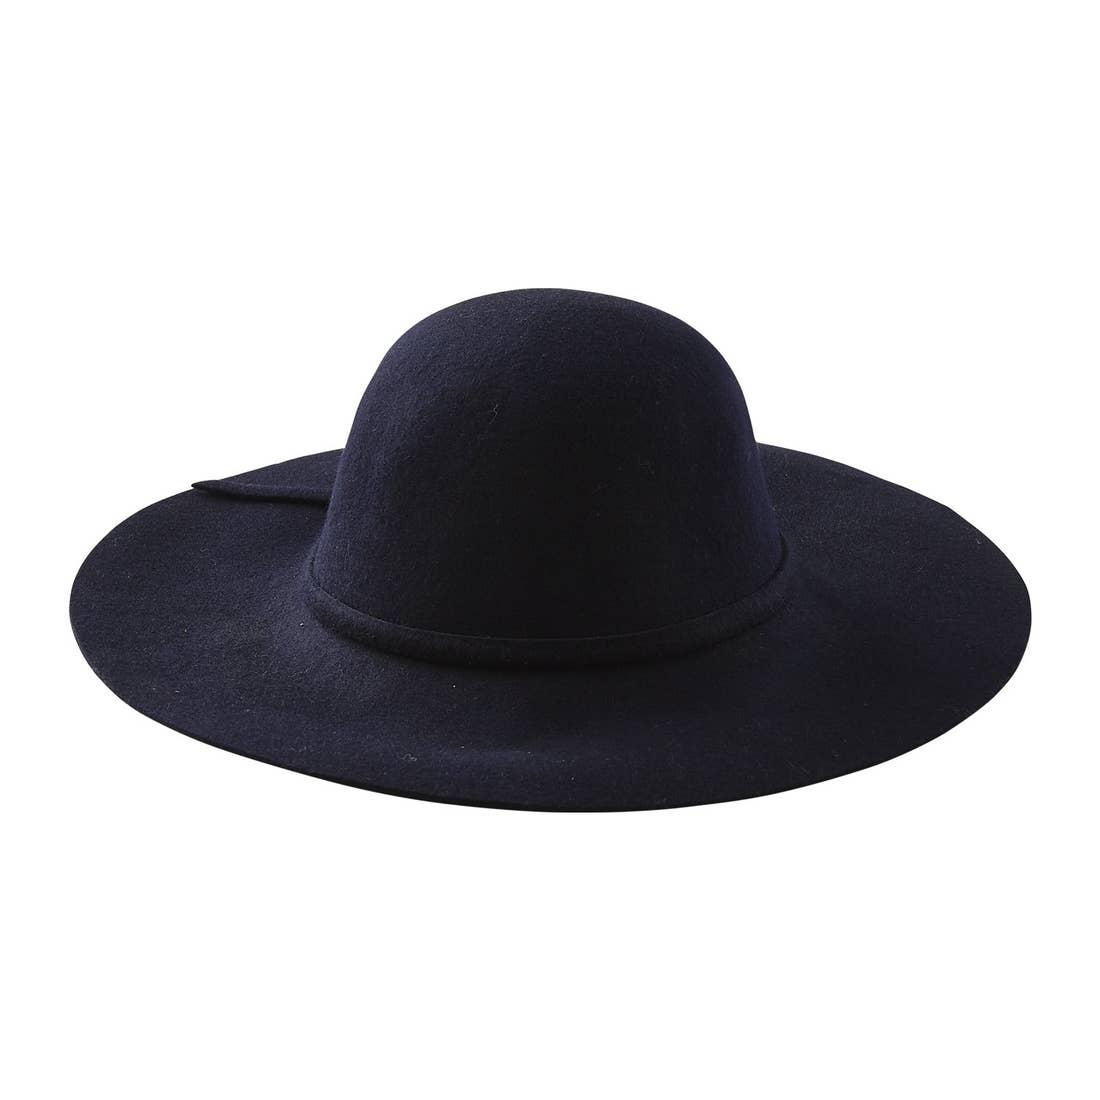 Floppy Wide Brim Wool Hat – Navy